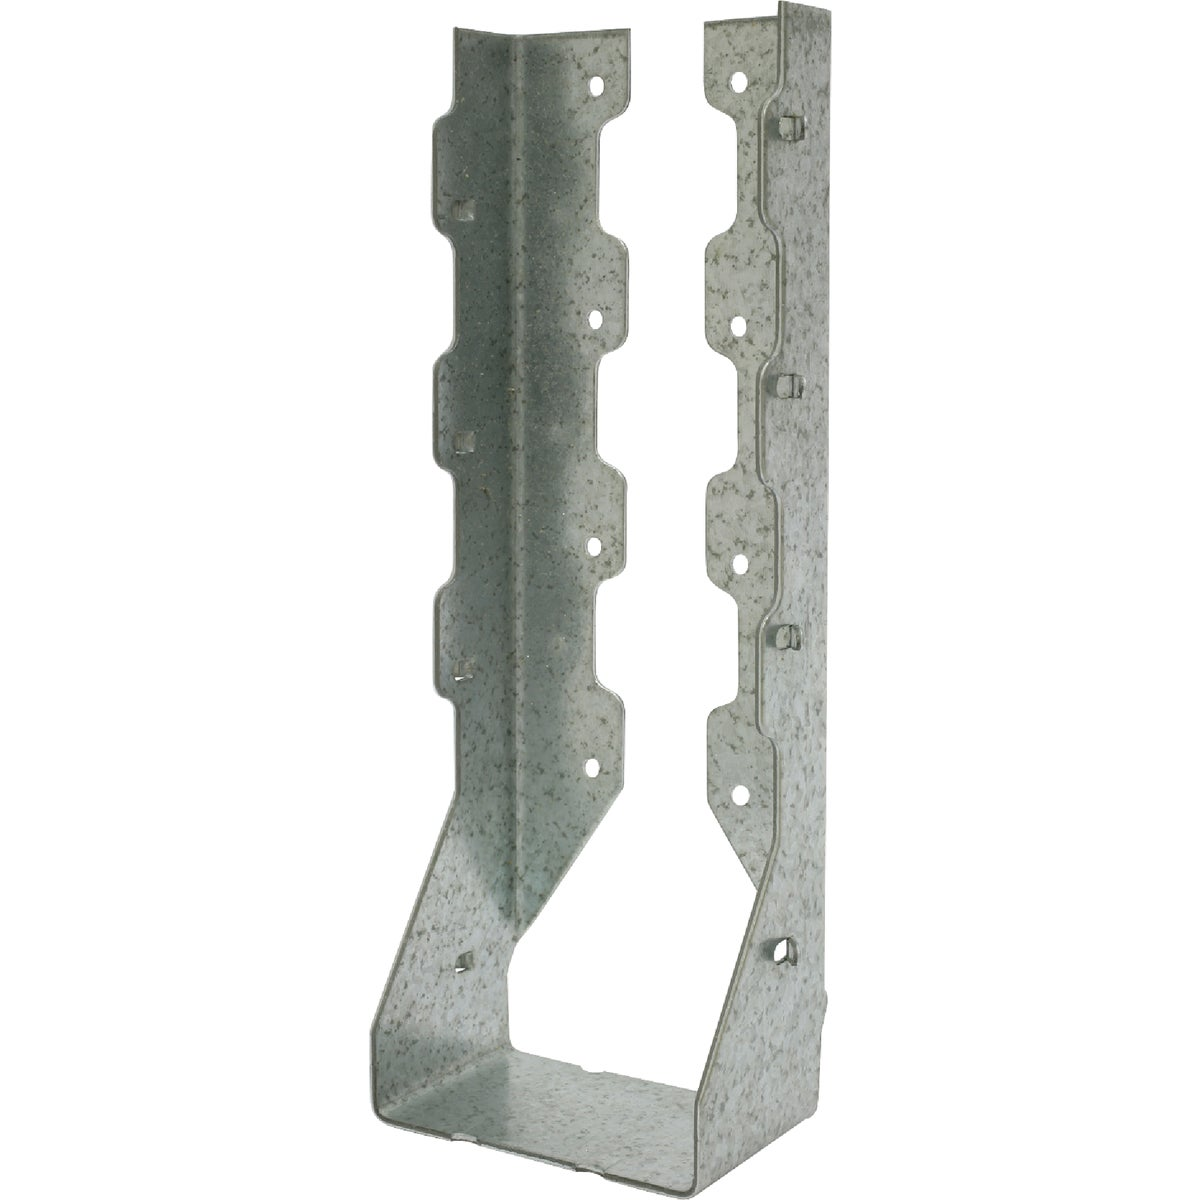 2X10 FACE MOUNT HANGER - HUSC210-2Z by Simpson Strong Tie